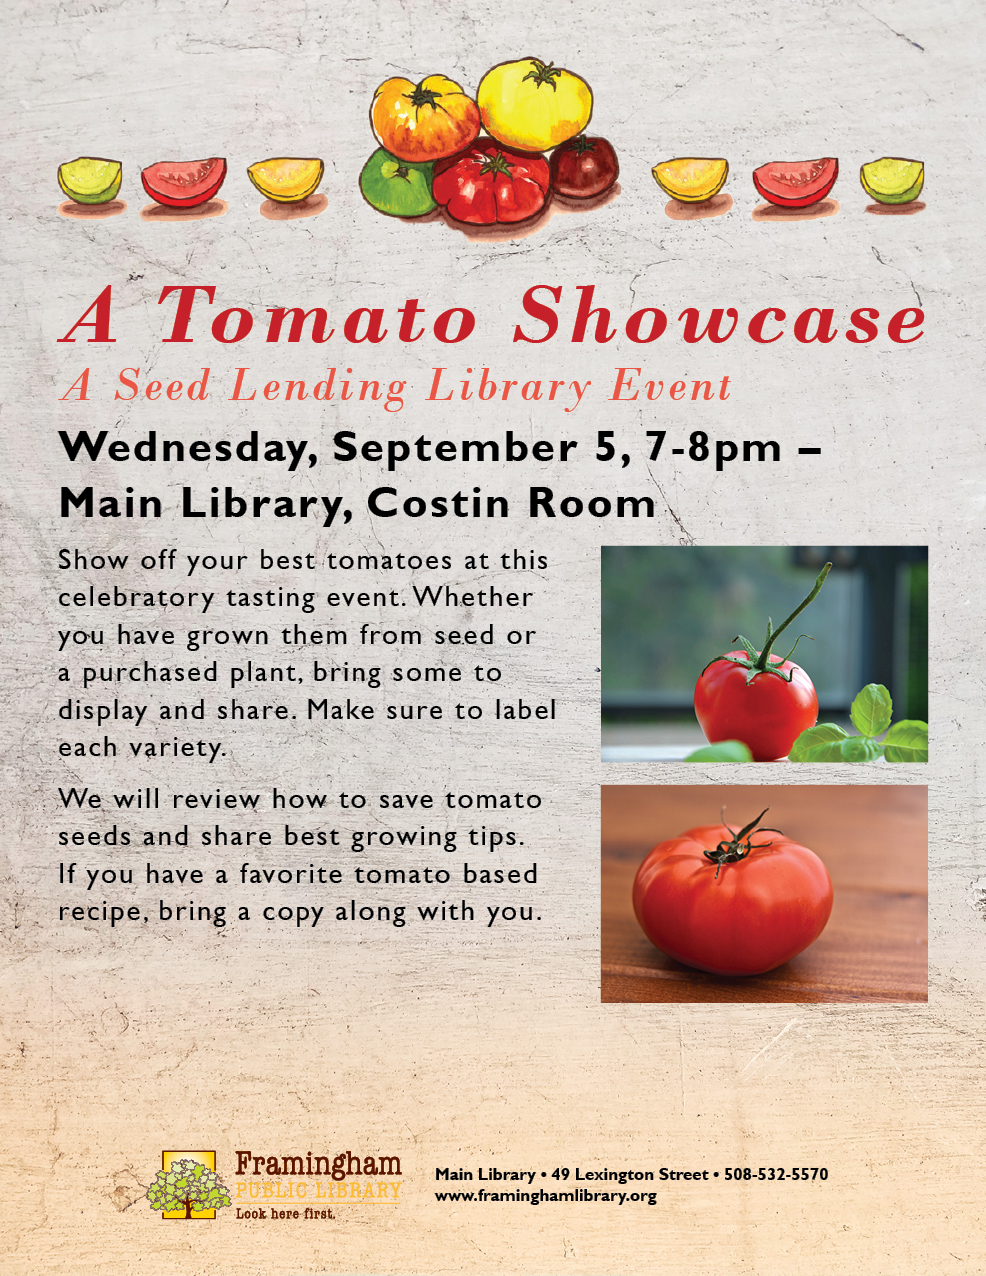 A Tomato Showcase thumbnail Photo